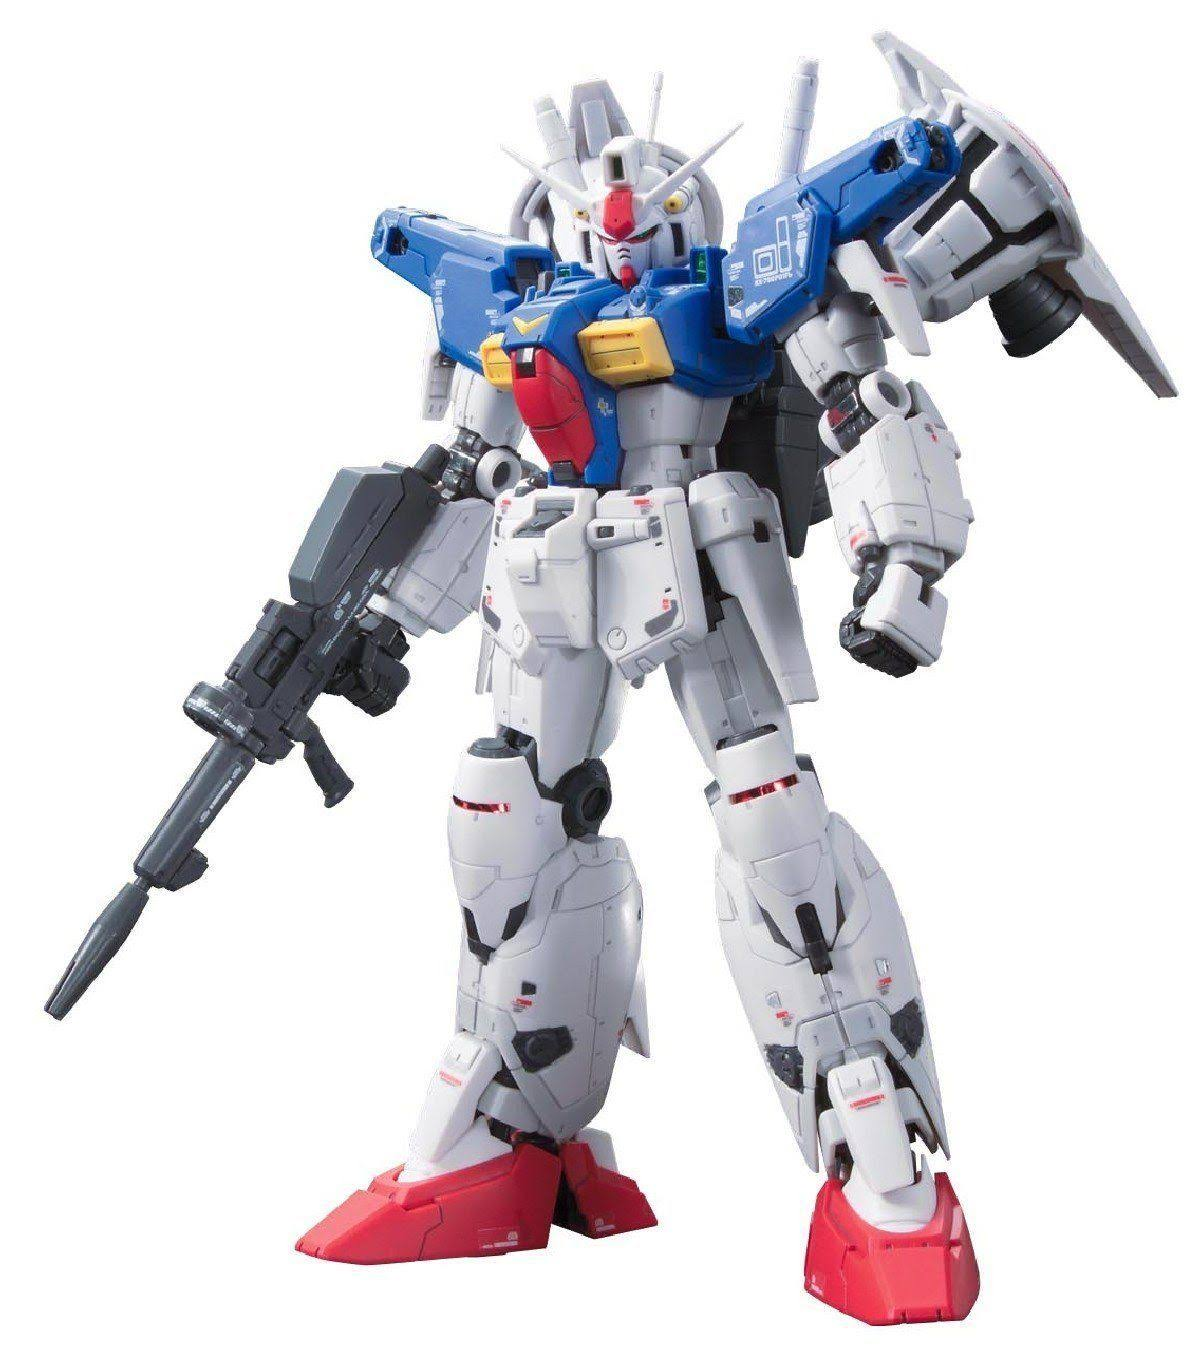 Bandai Hobby Real Gundam Full Burnern Action Figure Model Kit - 1:144 Scale